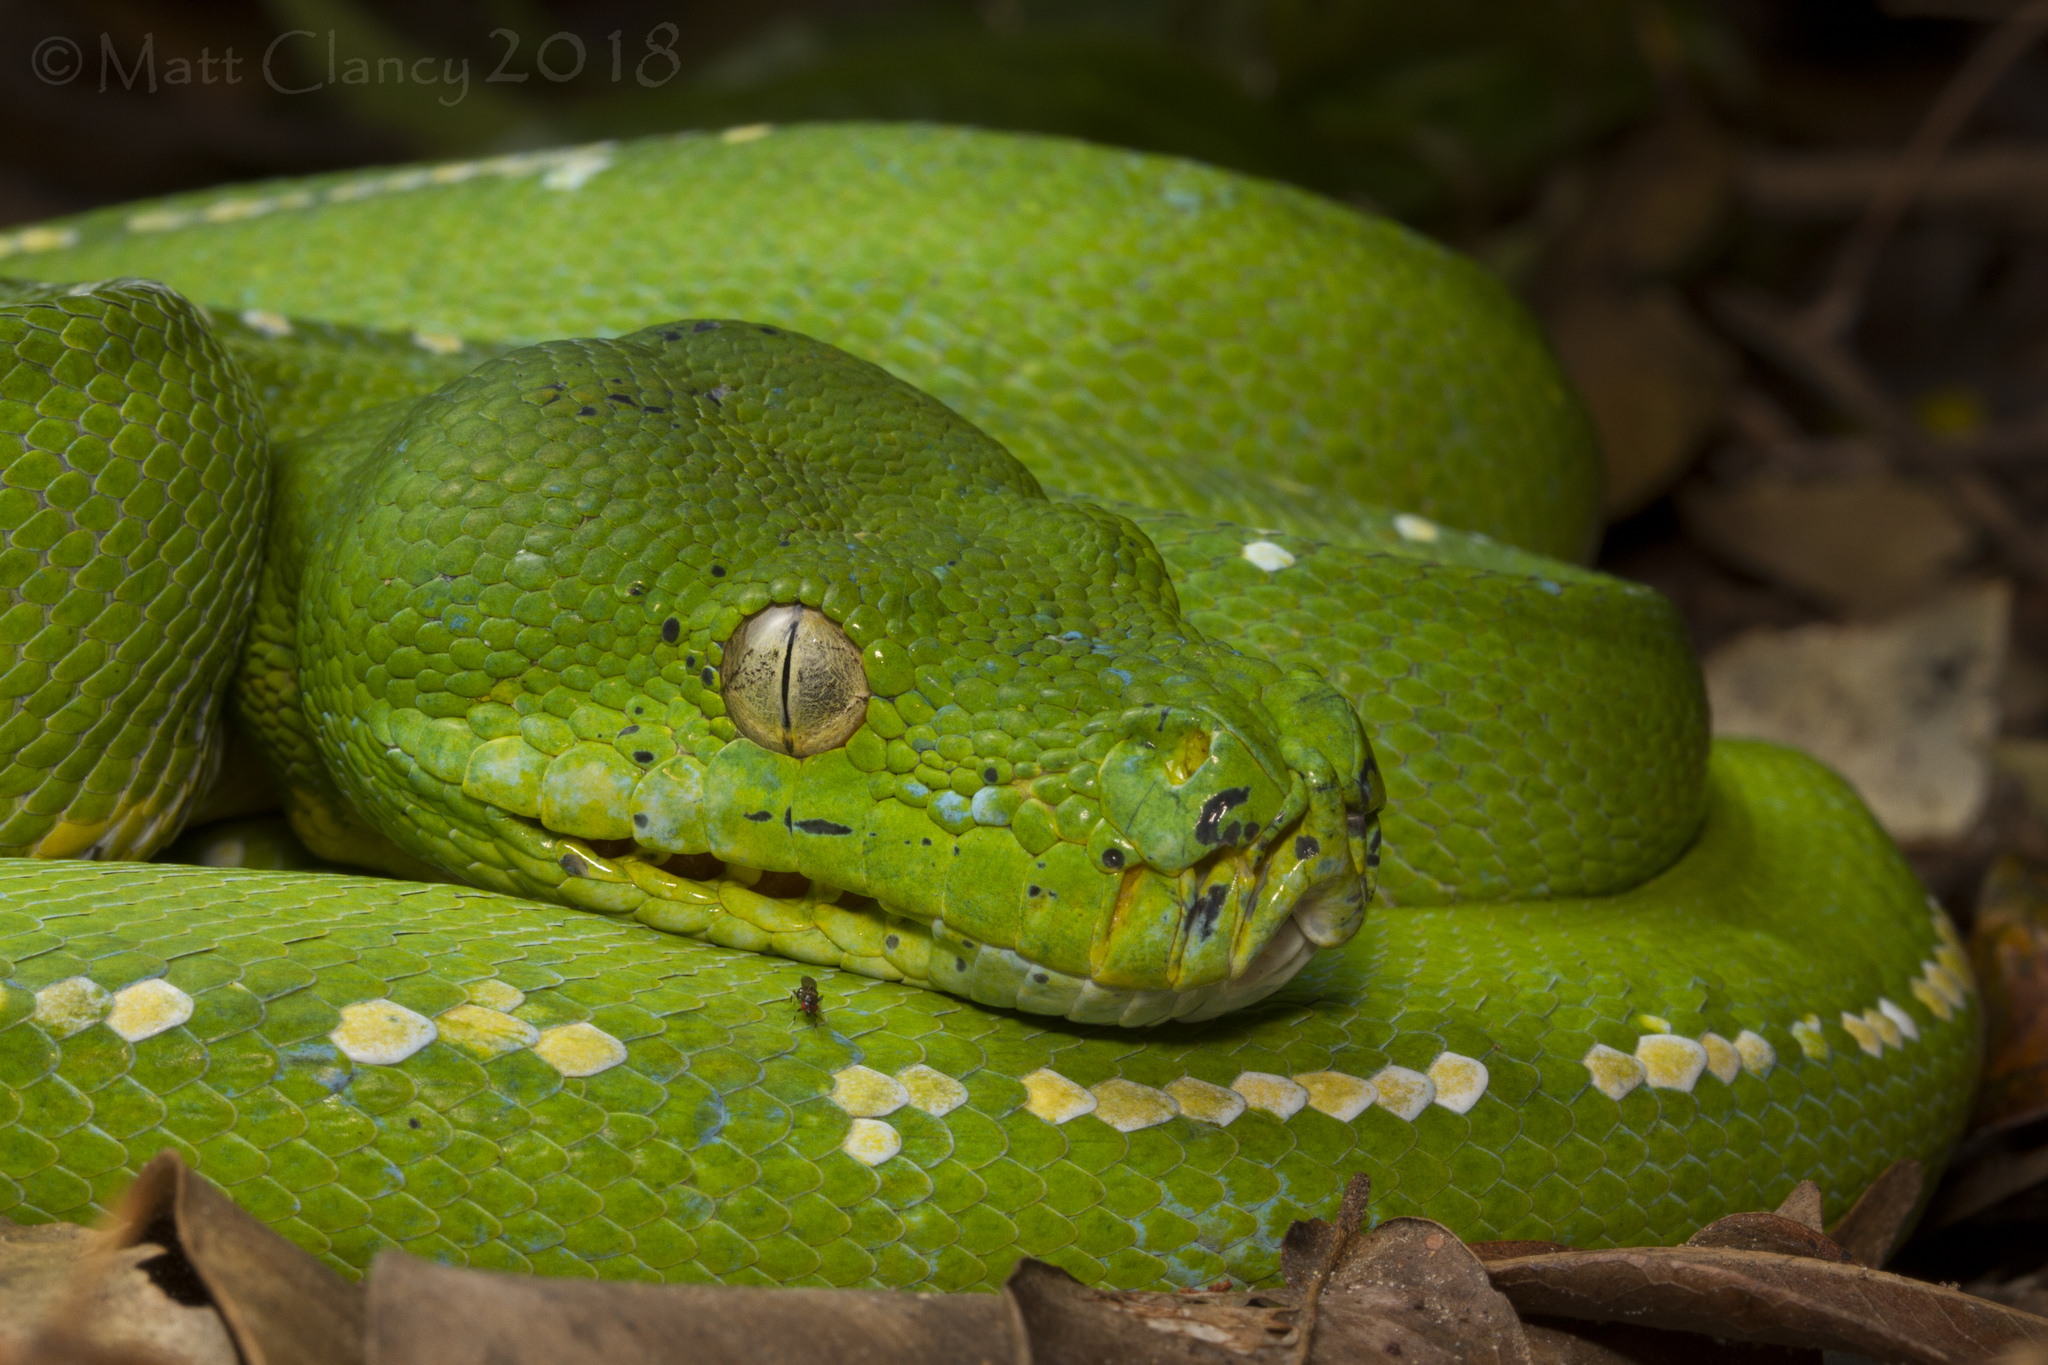 Serpiente de color verde - 2048x1365